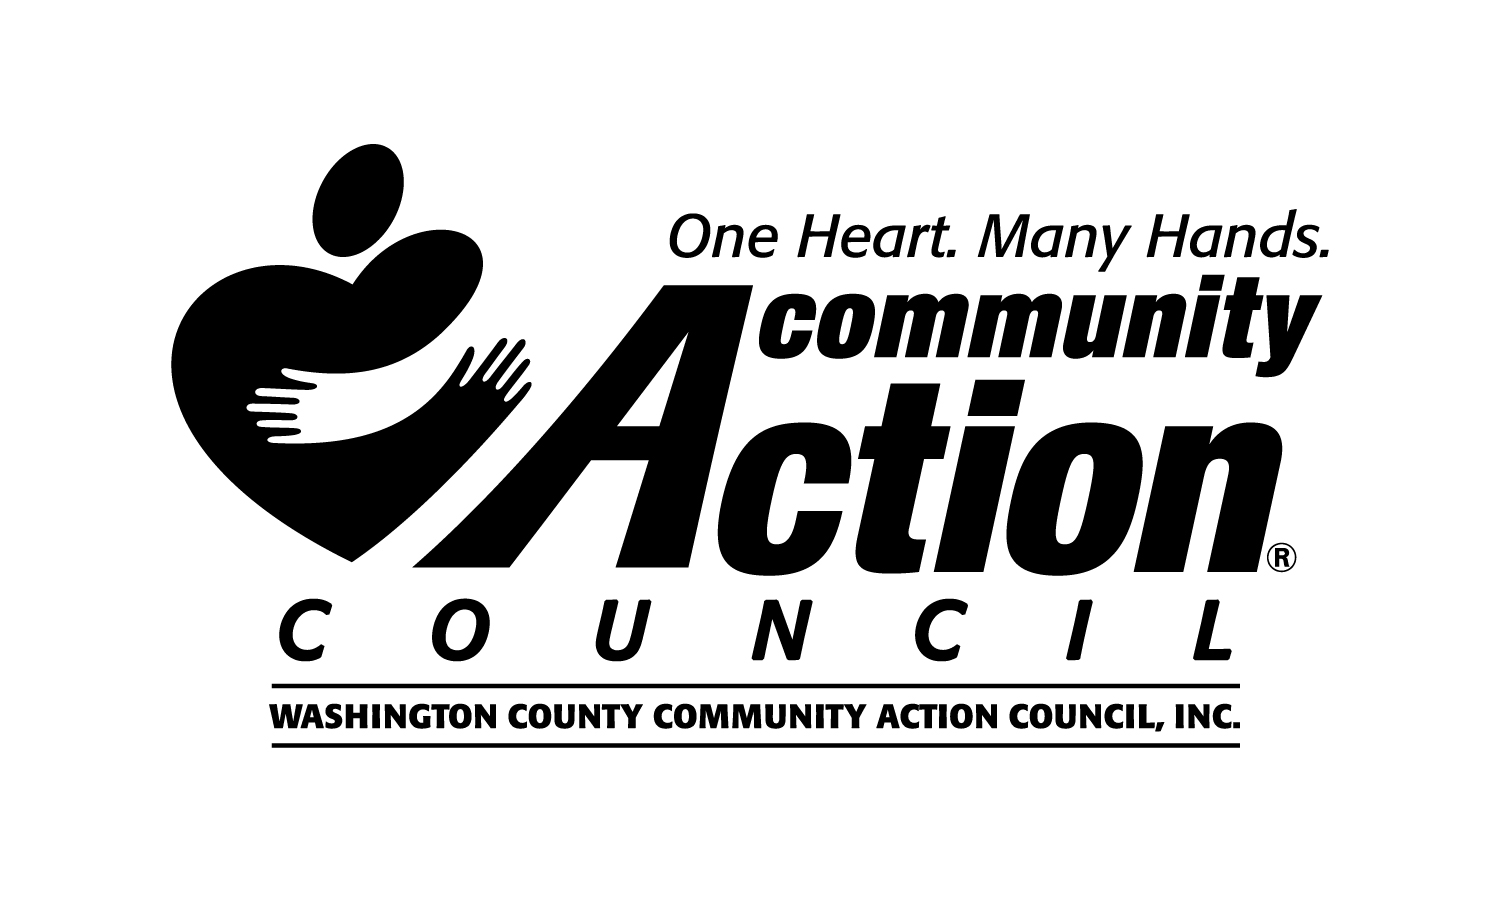 Logo for Comm. Action Council